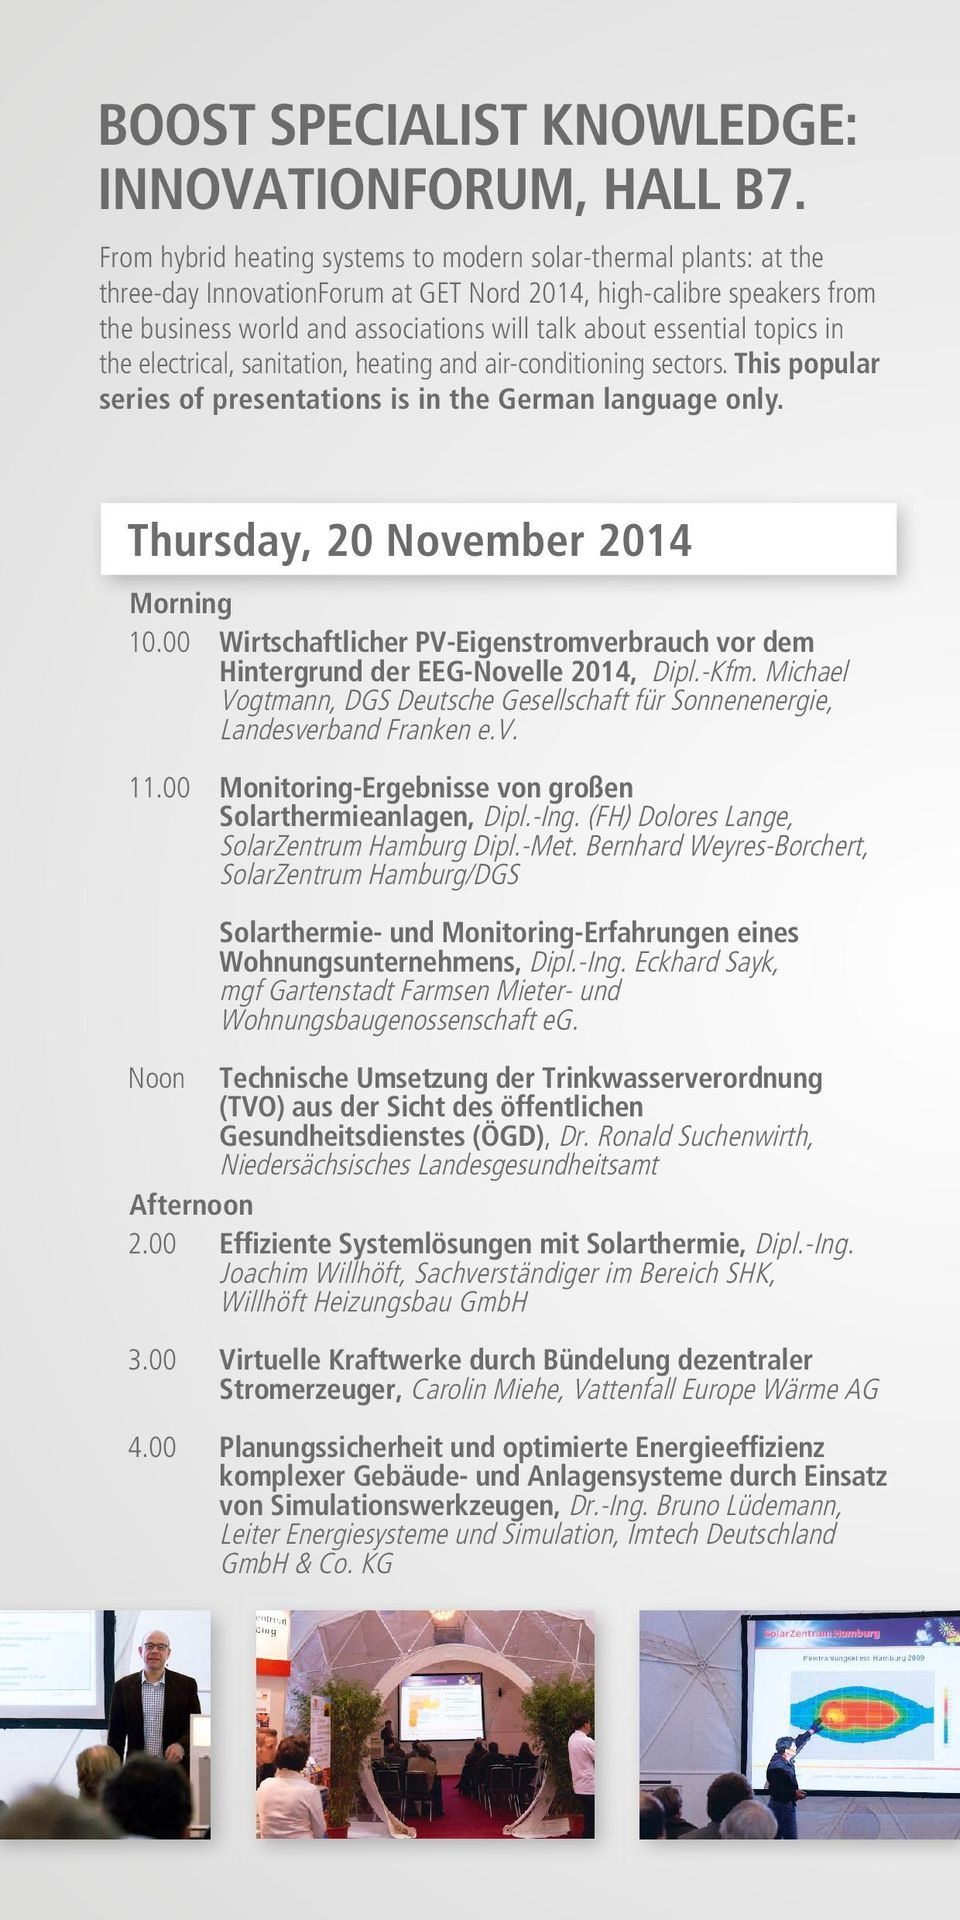 topics in the electrical, sanitation, heating and air-conditioning sectors. This popular series of presentations is in the German language only. Thursday, 20 November 2014 Morning 10.